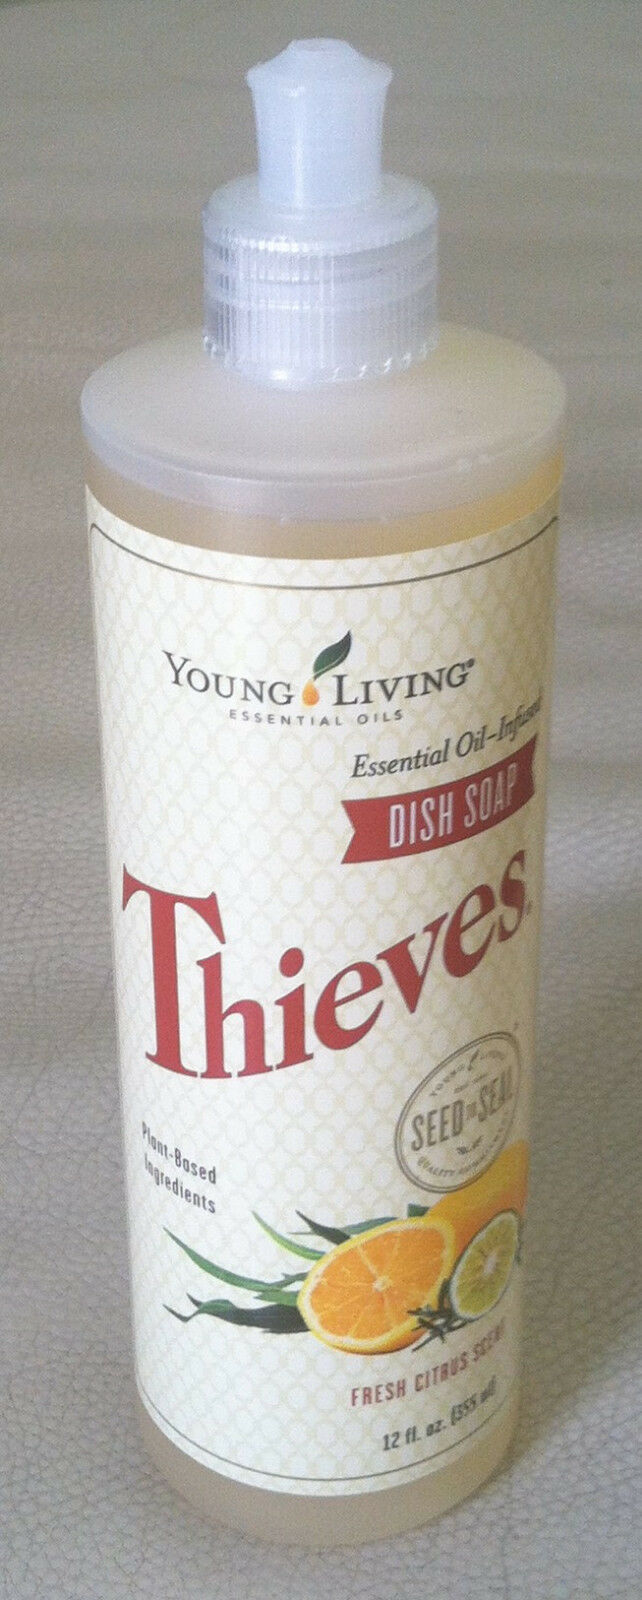 Young Living Essential Oils - Thieves Dish Soap - 12 fl oz - NEW